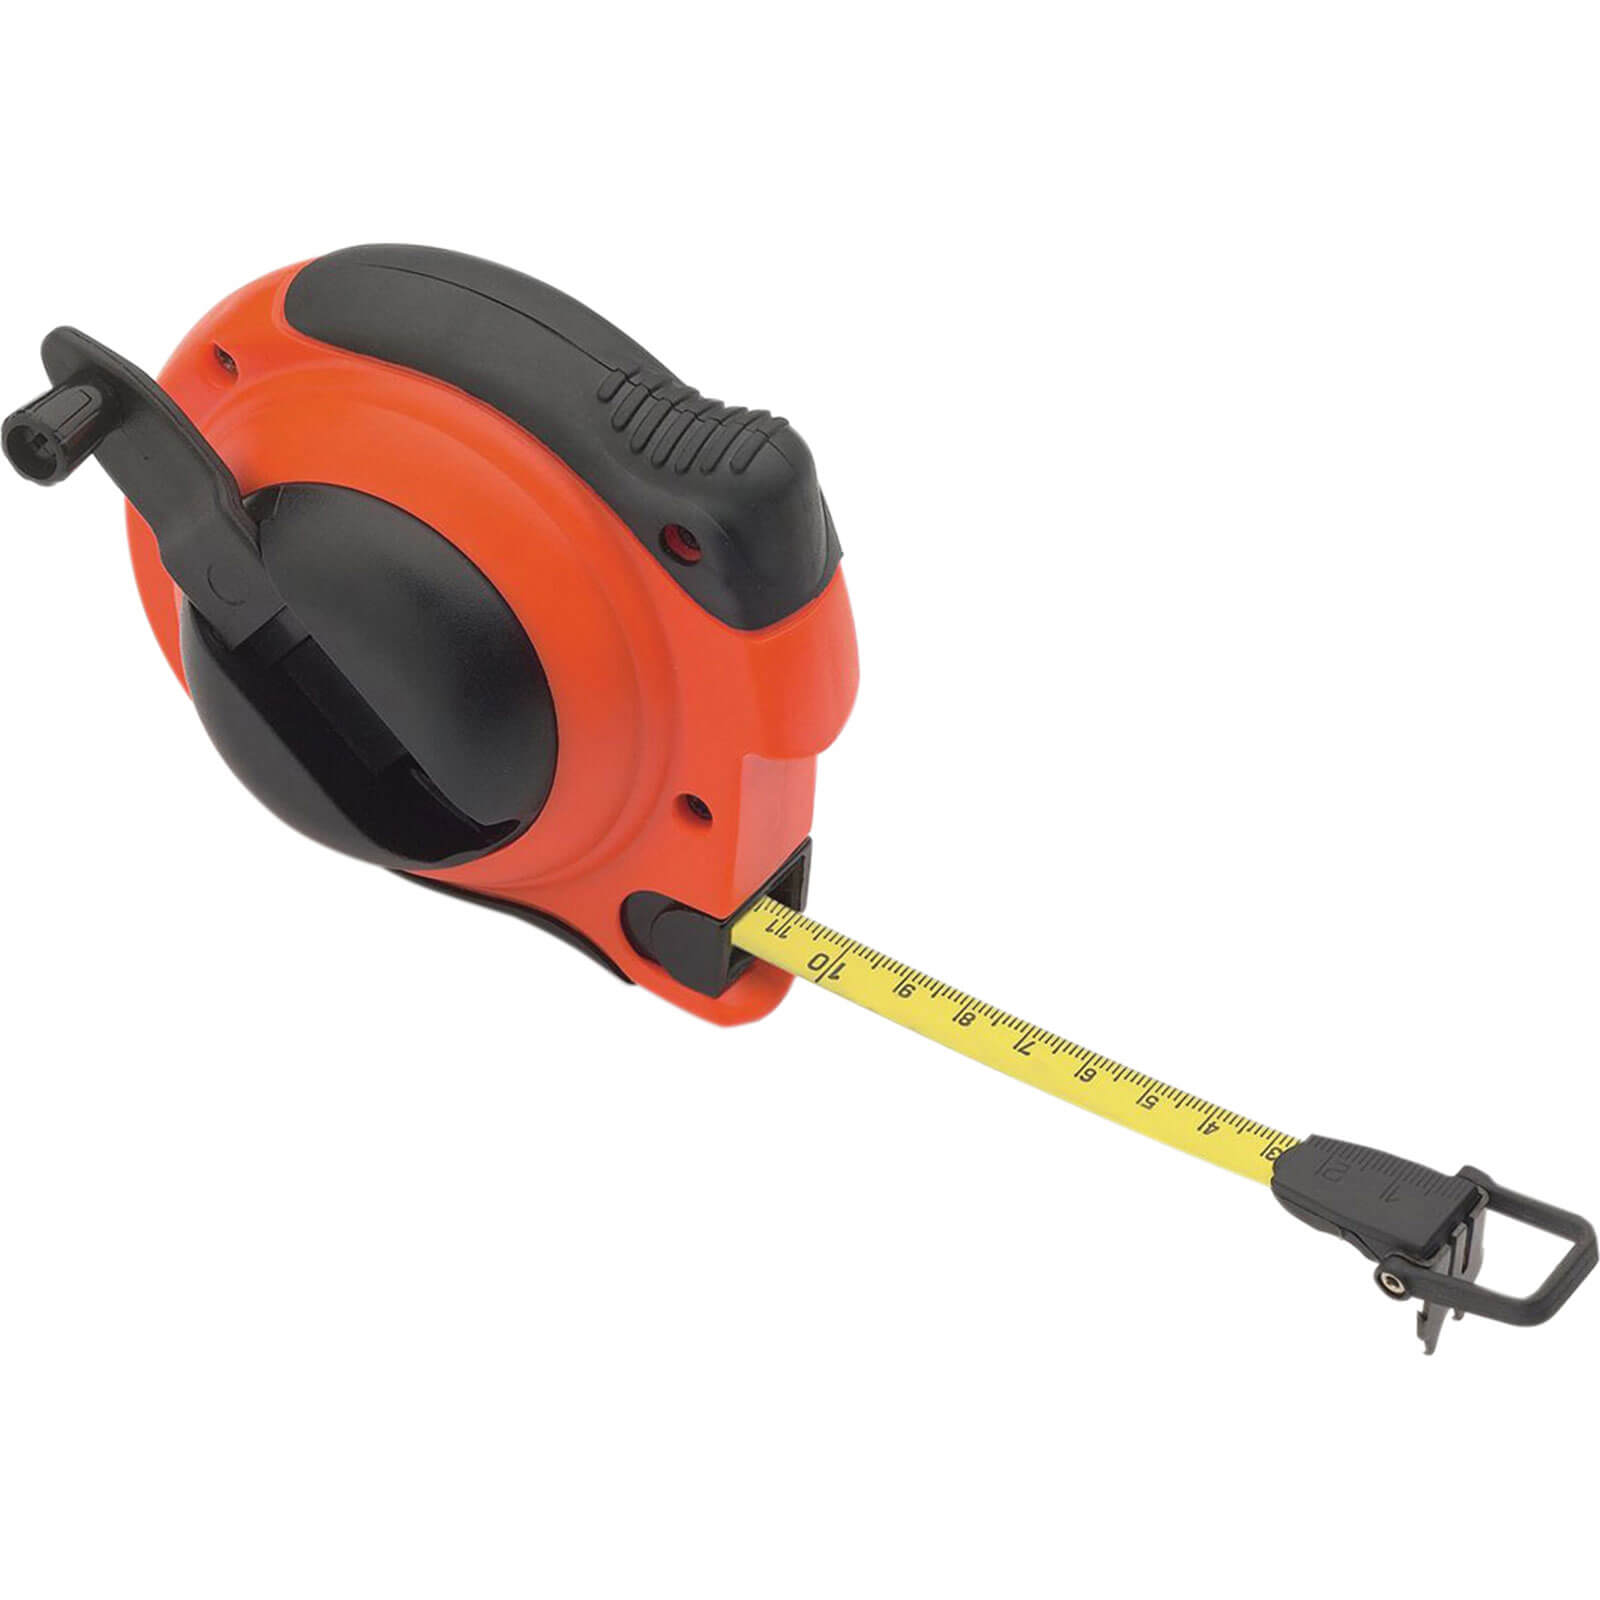 Image of Lufkin Special Long Tape Measure Imperial & Metric 100ft / 30m 10mm